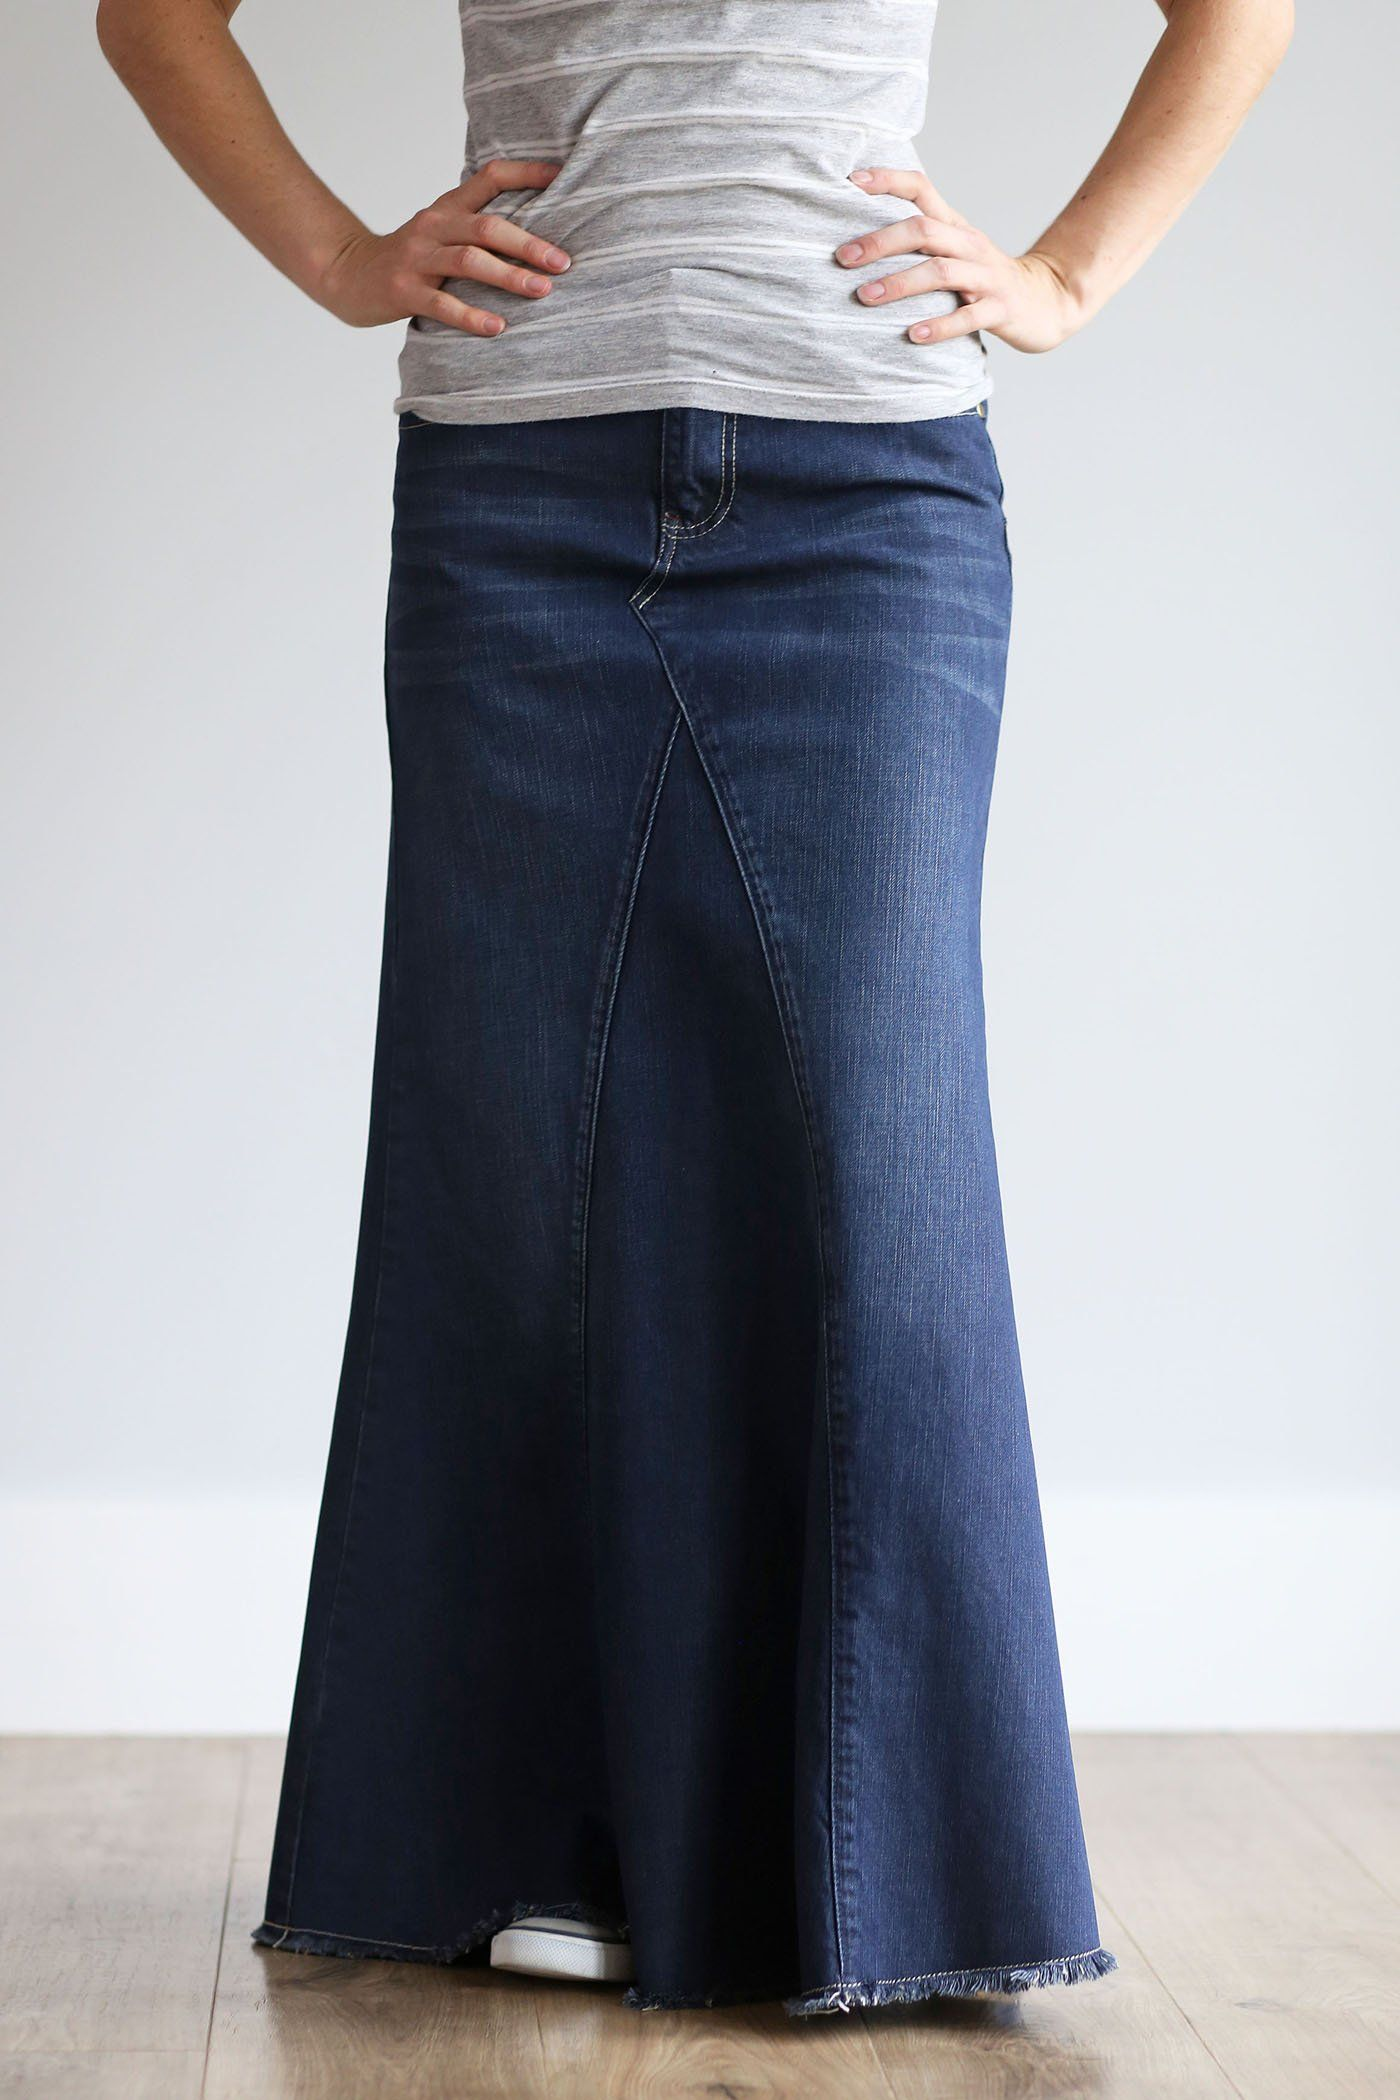 bf9f3636 'Lainey' Flattering Dark Wash Long Jean Skirt ok just bcause its long don't  make it modest! that is also tight and but grabing.. also modest Chritian  dress ...